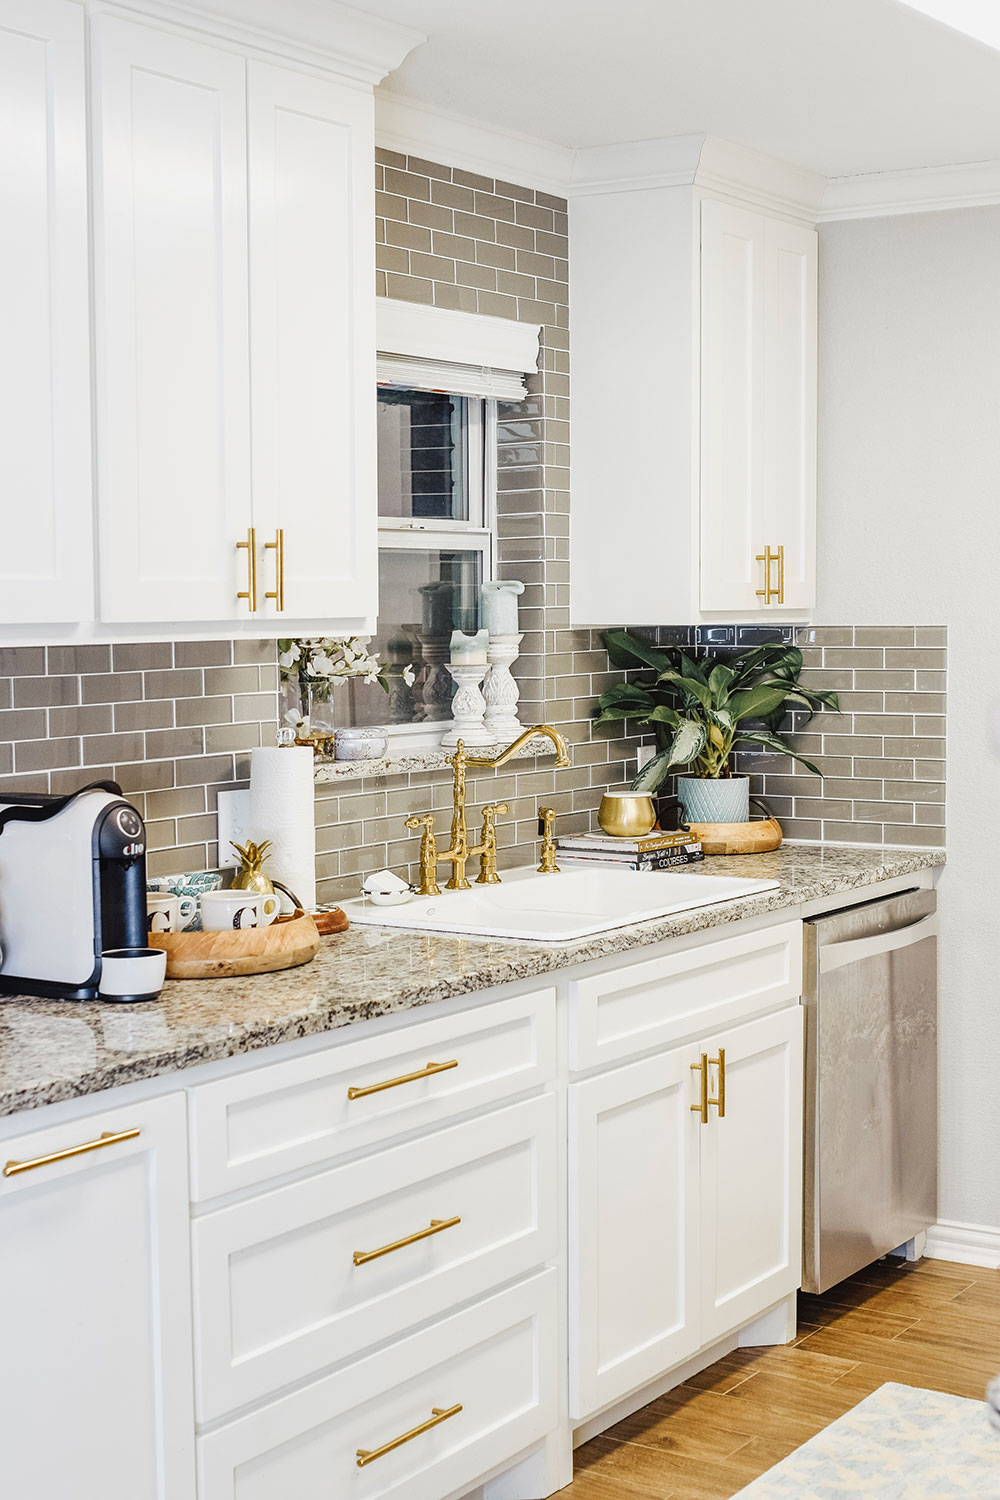 Small Kitchen Designs: Our Kitchen Sink Woes + Our Small Kitchen Reveal